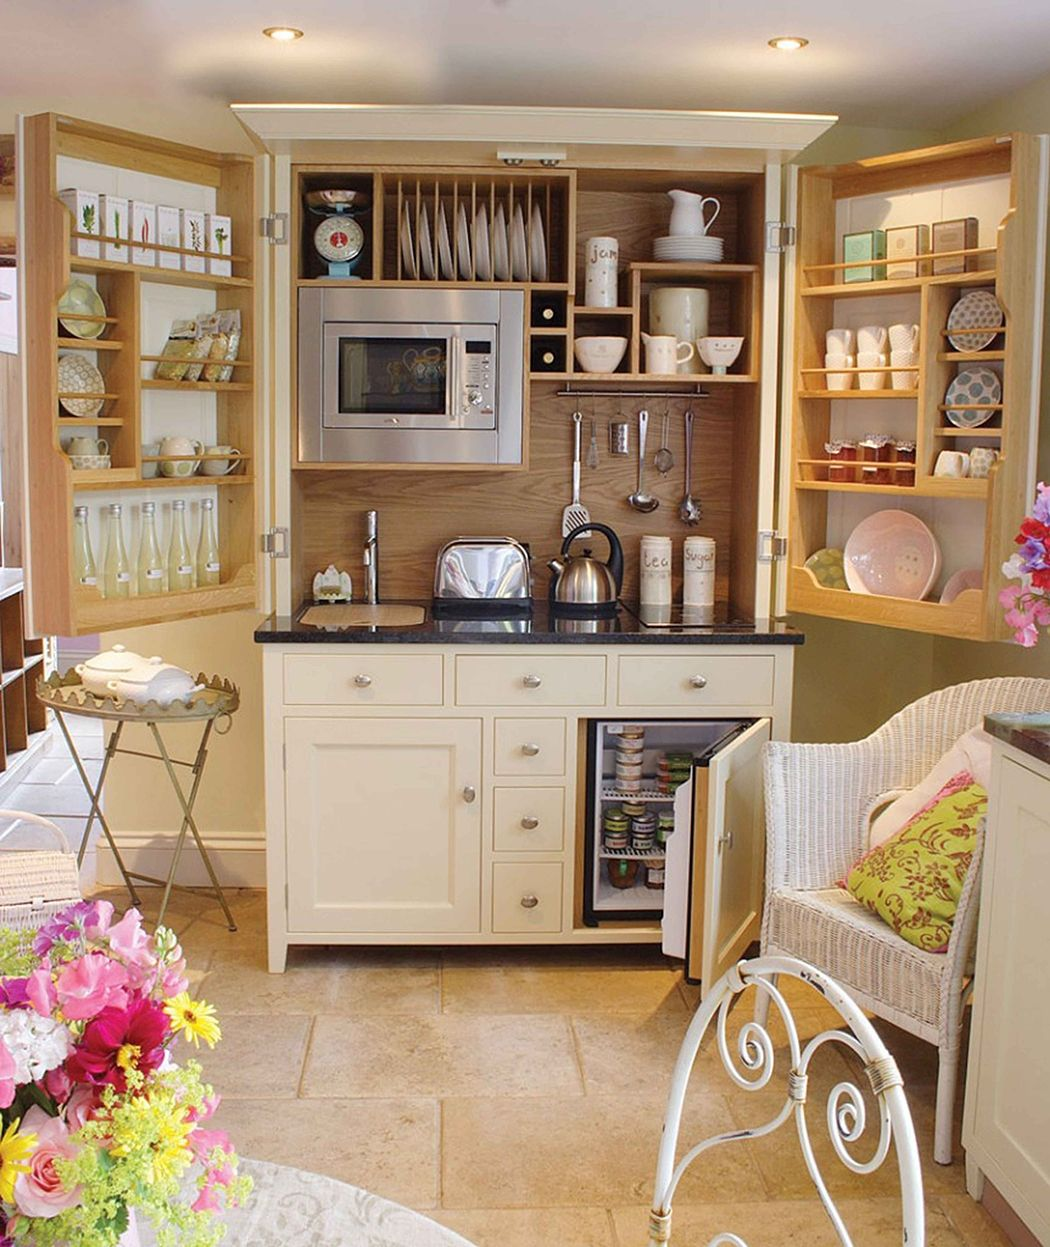 Complete Compact Kitchen With Dishwasher